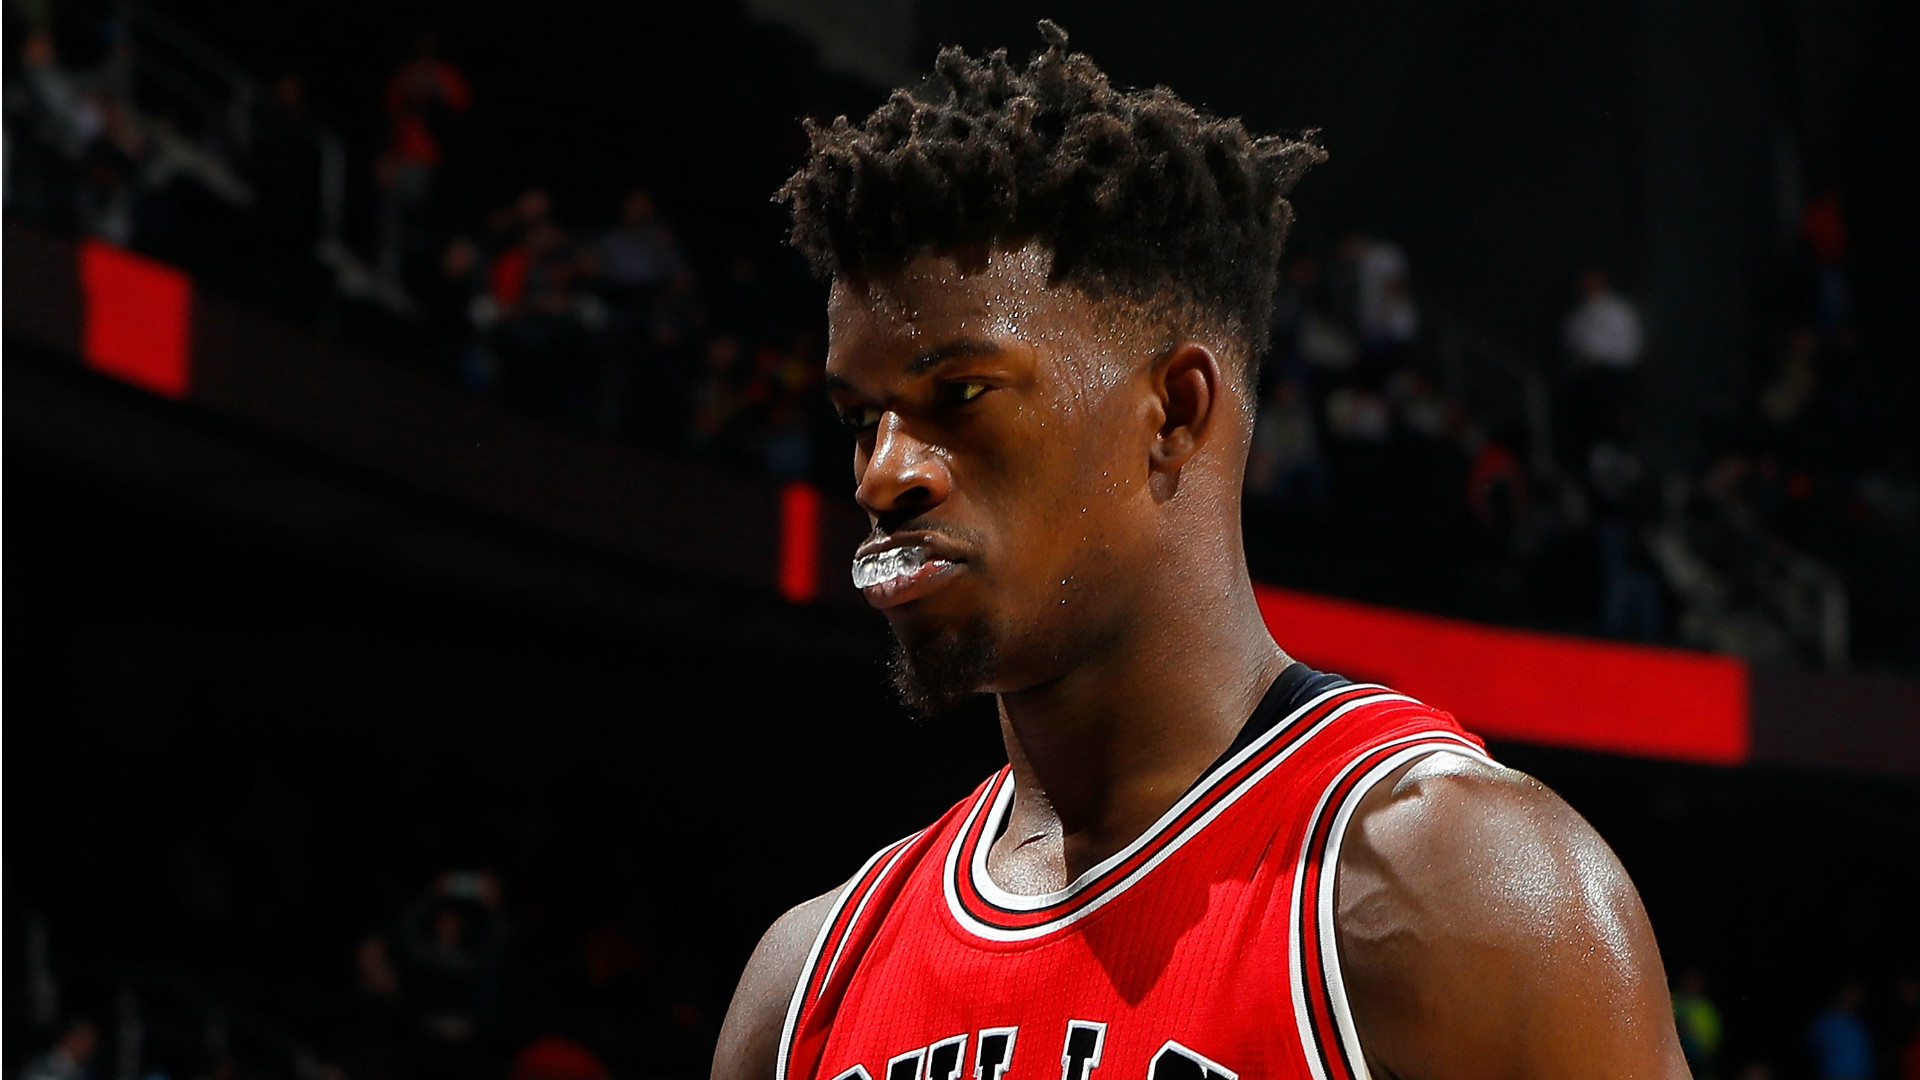 Jimmy Butler Wallpaper 2018 69 images 1920x1080